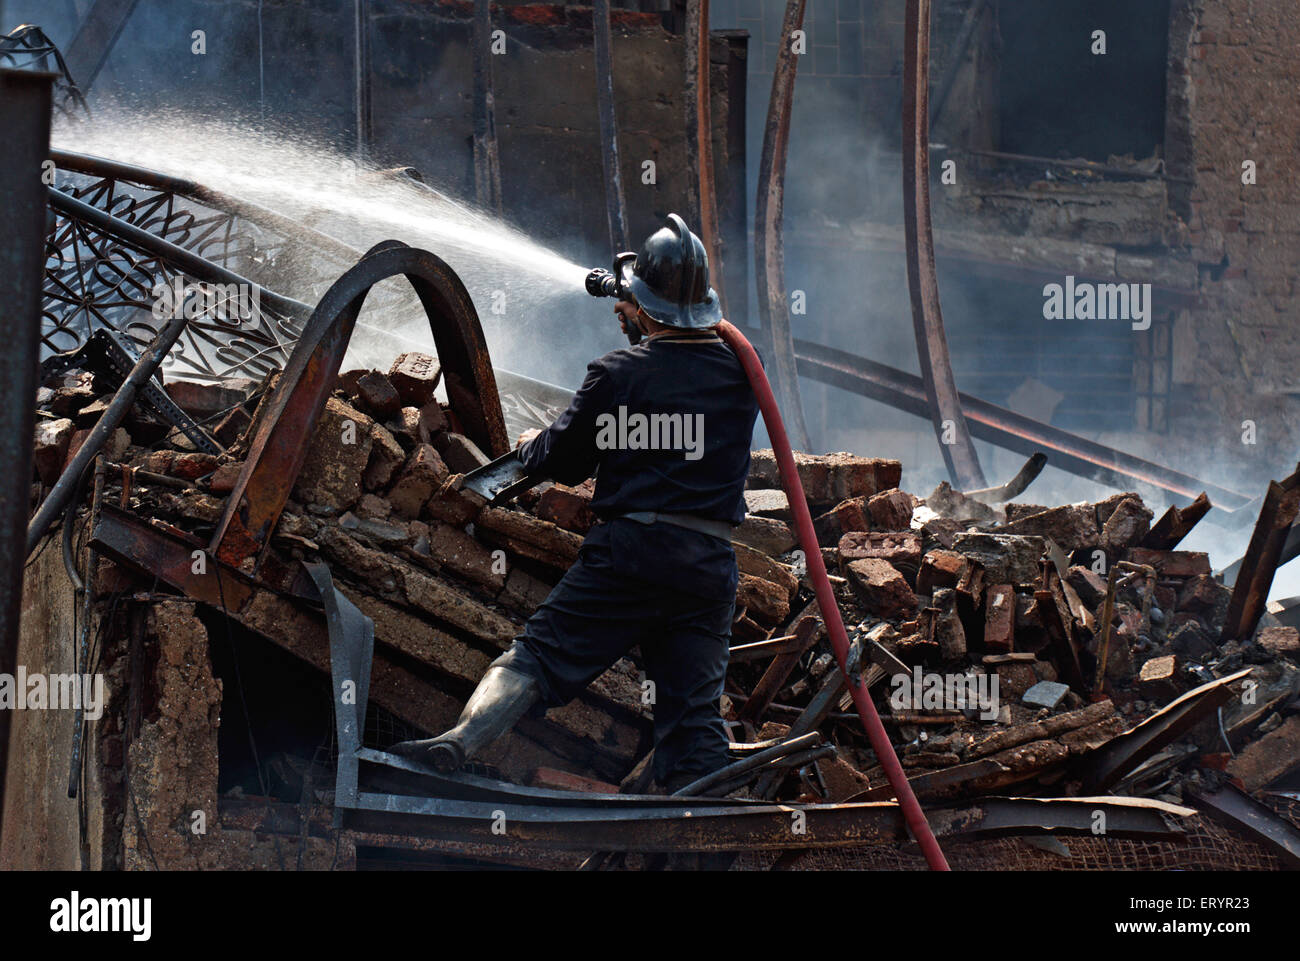 Firefighter dousing fire in Behrampada slums ; Bandra ; Bombay Mumbai ; Maharashtra ; India 18 June 2009 - Stock Image